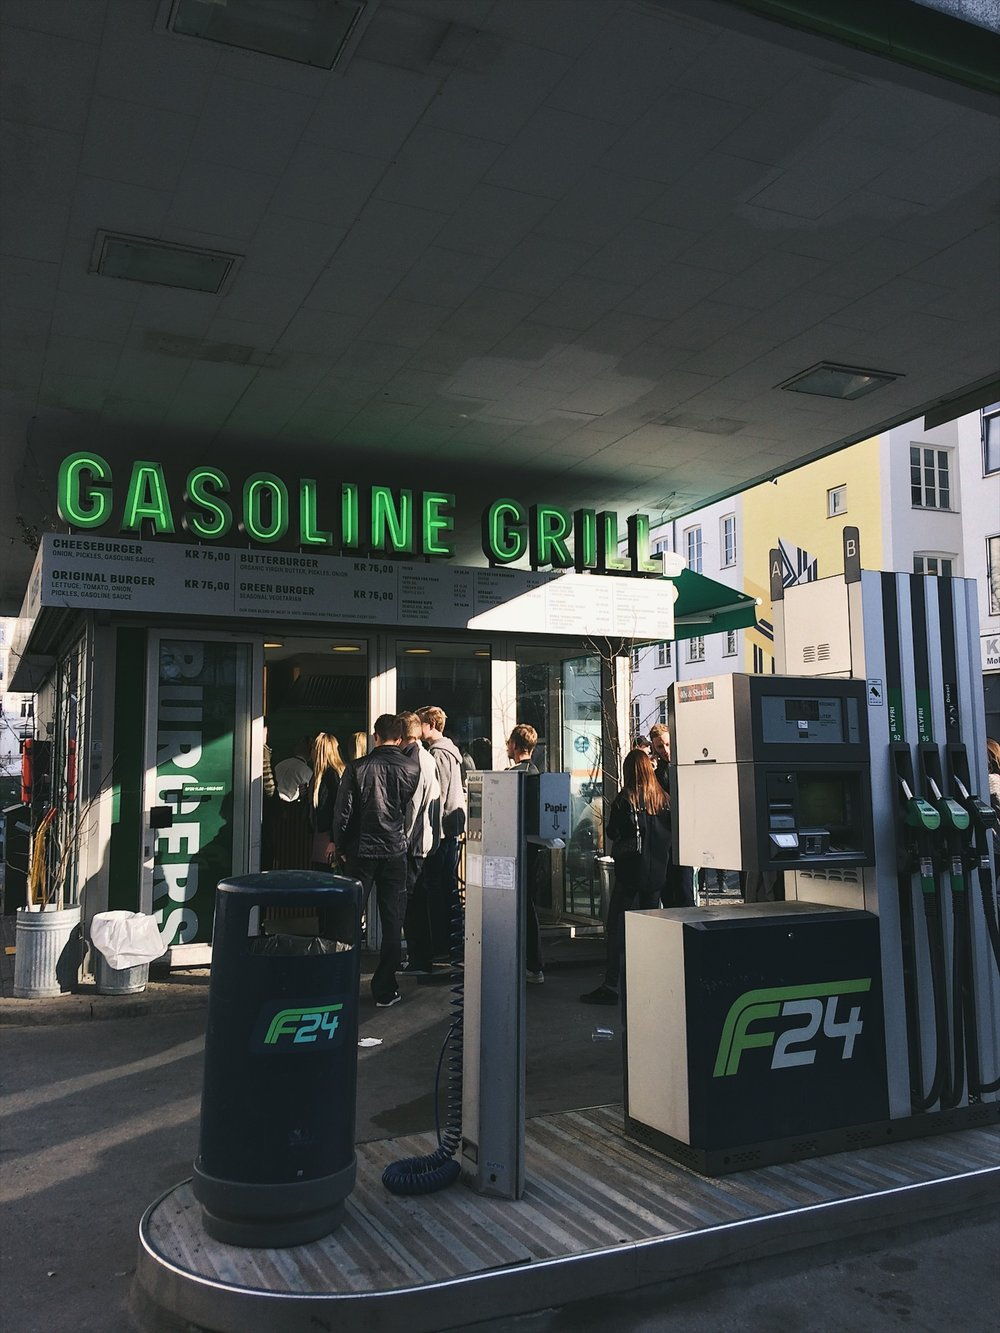 5. EAT | GASOLINE GRILL